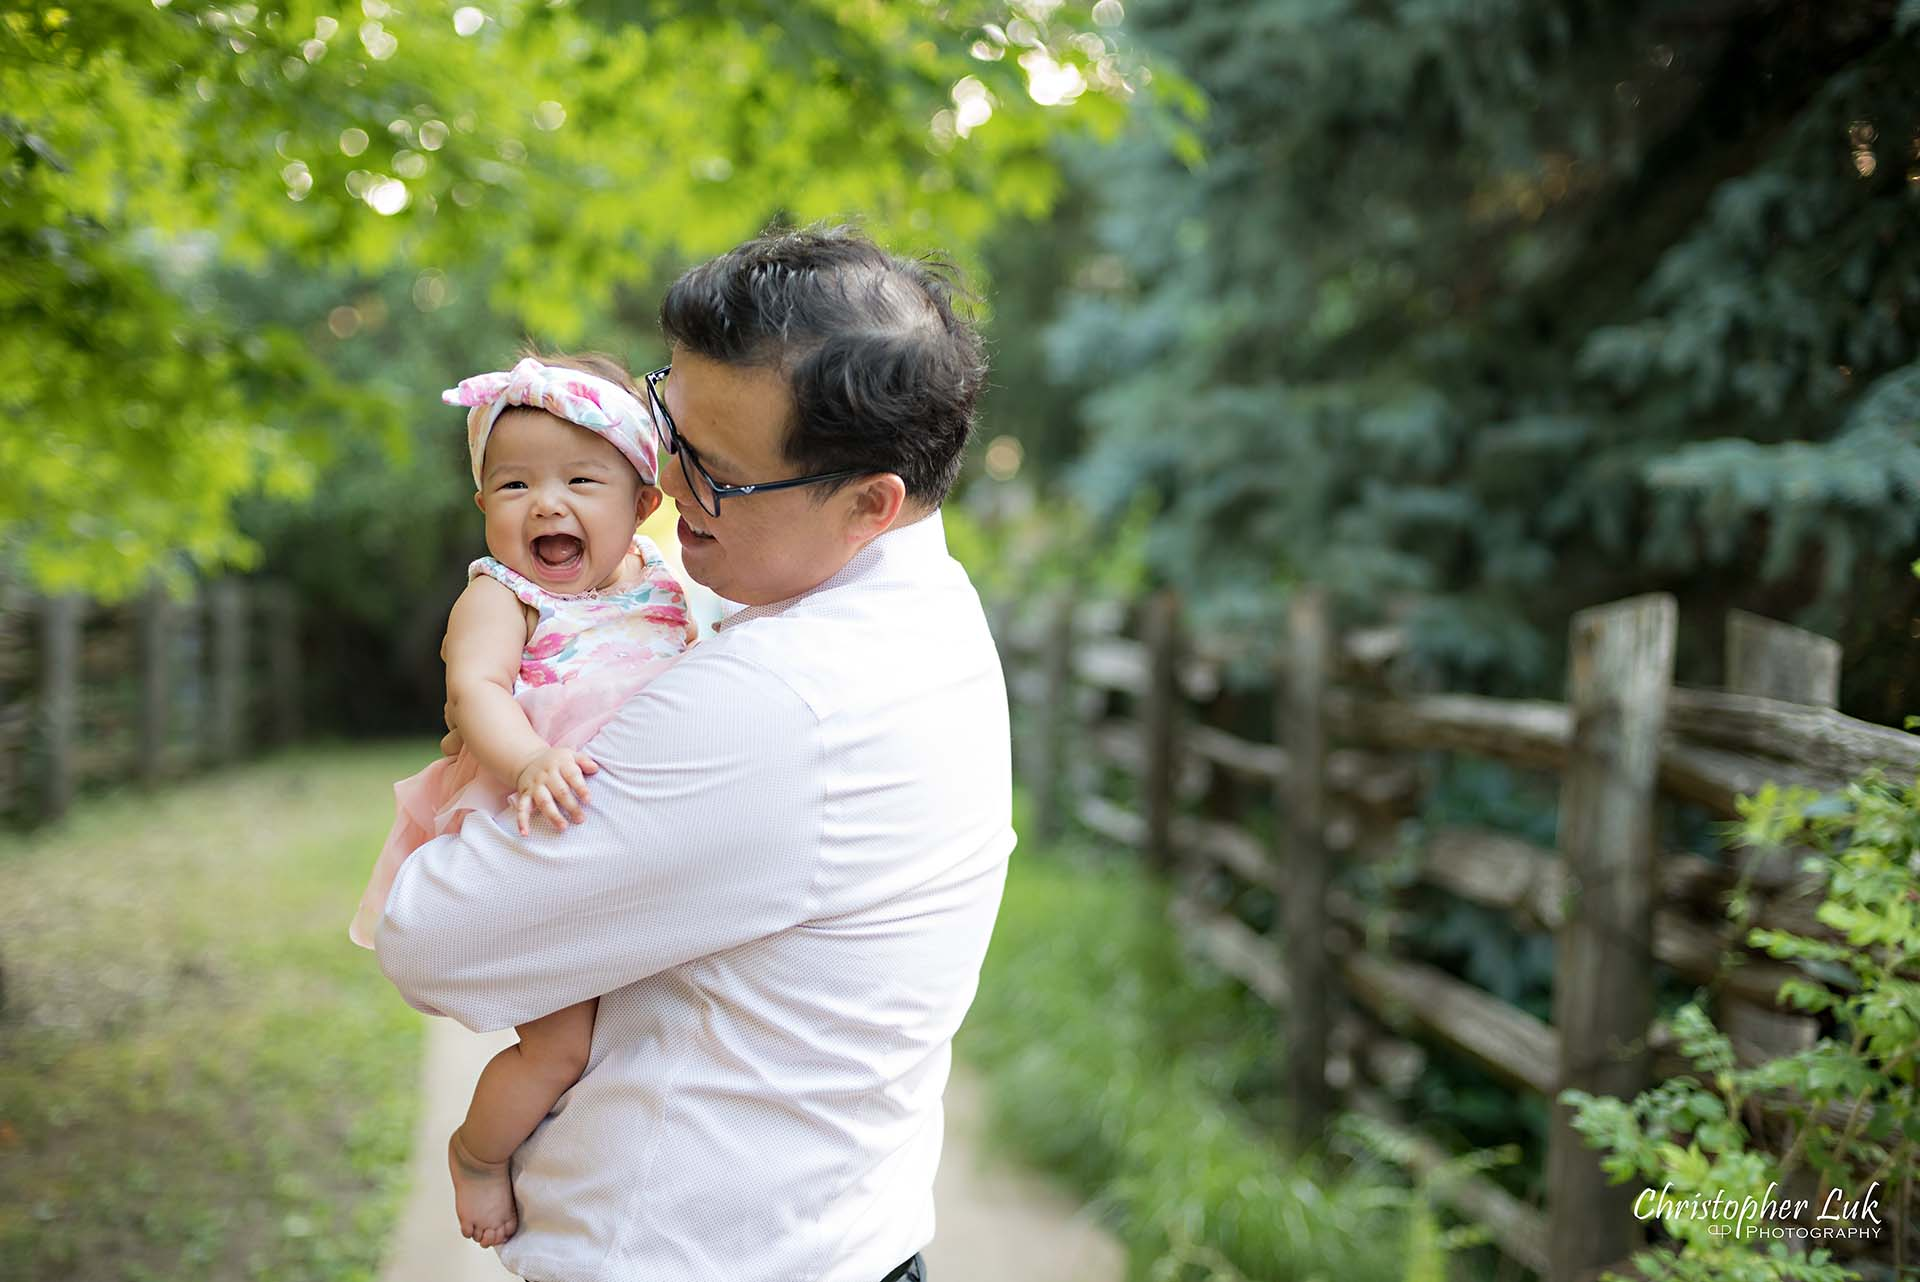 Christopher Luk Toronto Markham Family Children Photographer Candid Photojournalistic Candid Father Dad Baby Girl Daughter Hug Adorable Cute Laugh Smile